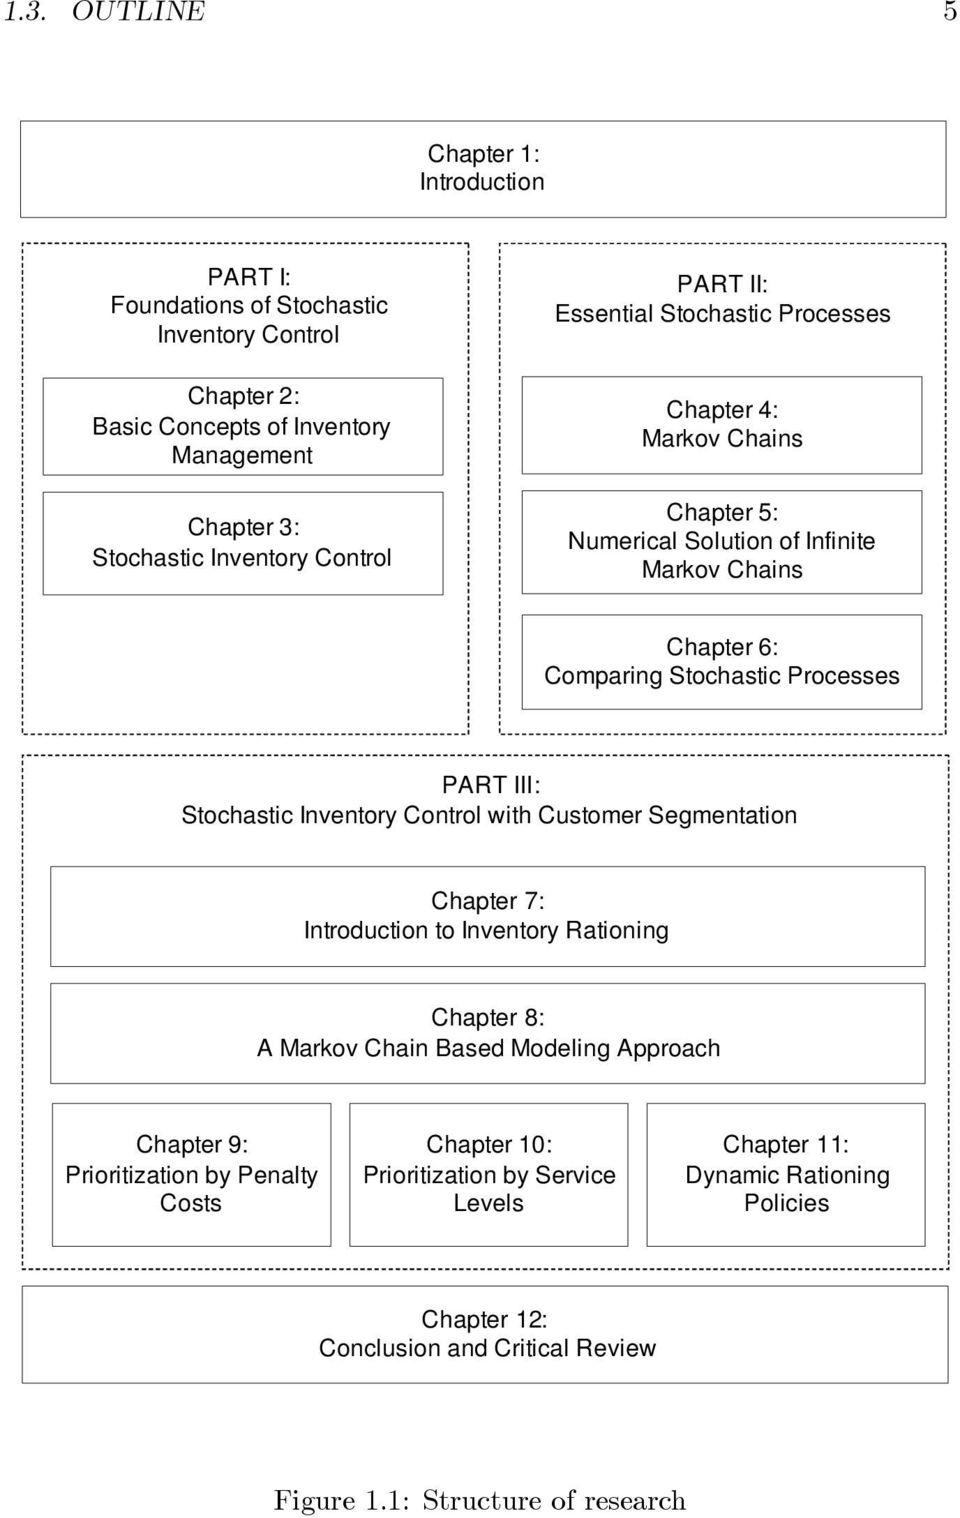 III: Stochastic Inventory Control with Customer Segmentation Chapter 7: Introduction to Inventory Rationing Chapter 8: A Markov Chain Based Modeling Approach Chapter 9: